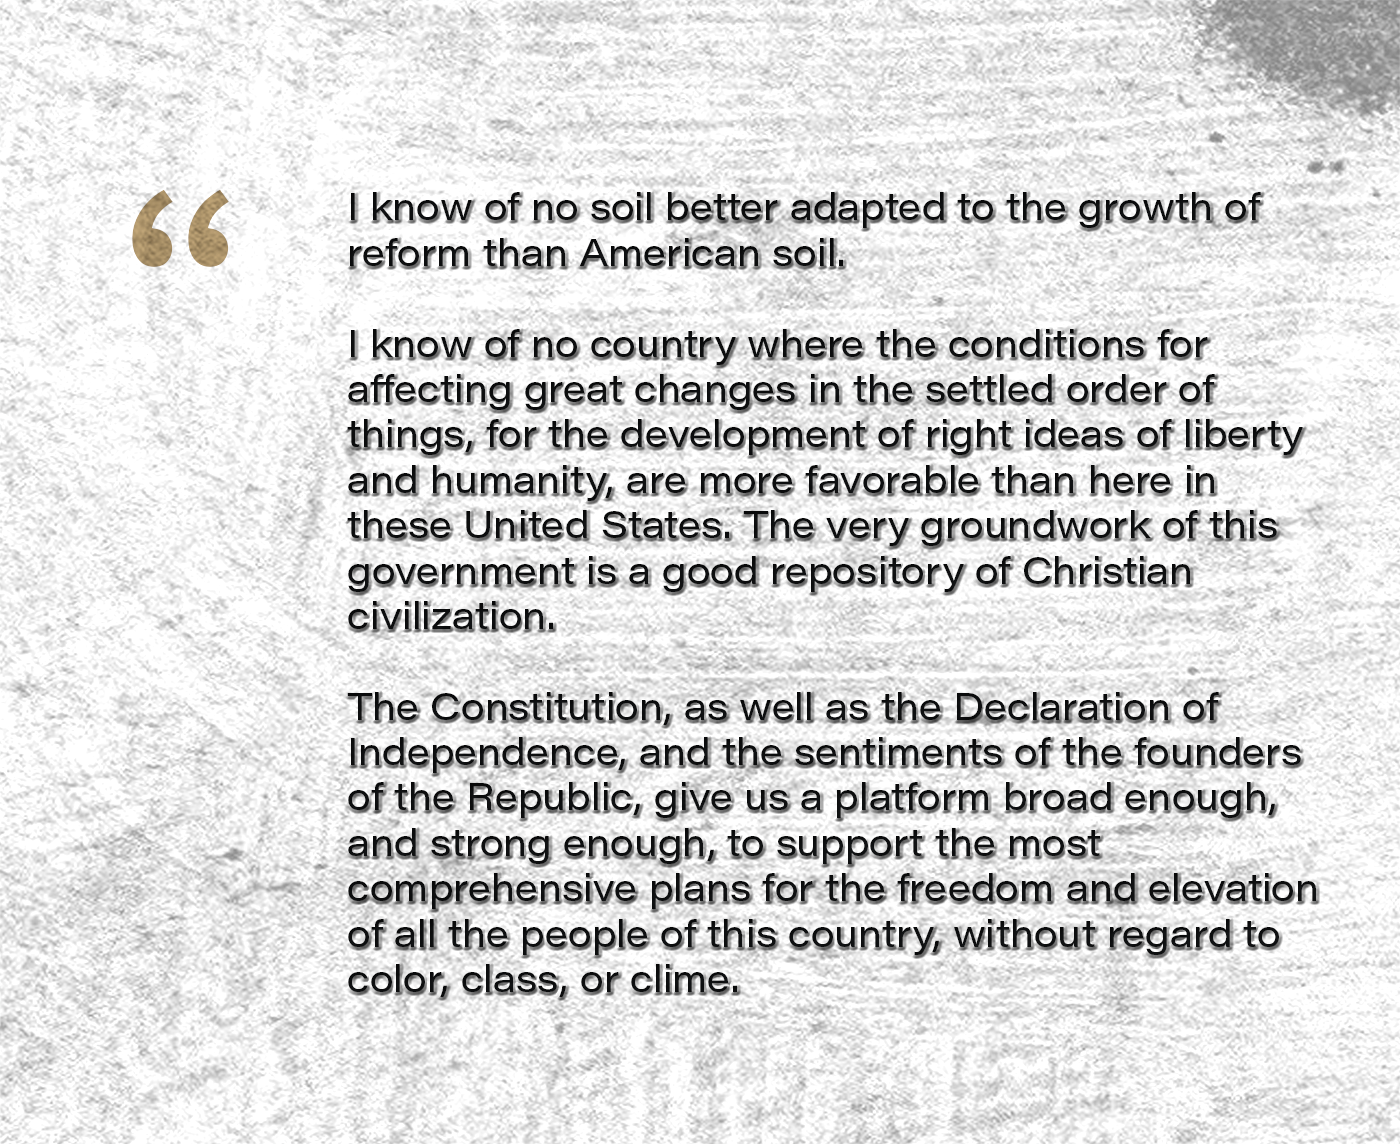 I know of no soil better adapted to the growth of reform than American soil. I know of no country where the conditions for affecting great changes in the settled order of things, for the development of right ideas of liberty and humanity, are more favorable than here in these United States. The very groundwork of this government is a good repository of Christian civilization. The Constitution, as well as the Declaration of Independence, and the sentiments of the founders of the Republic, give us a platform broad enough, and strong enough, to support the most comprehensive plans for the freedom and elevation of all the people of this country, without regard to color, class, or clime.